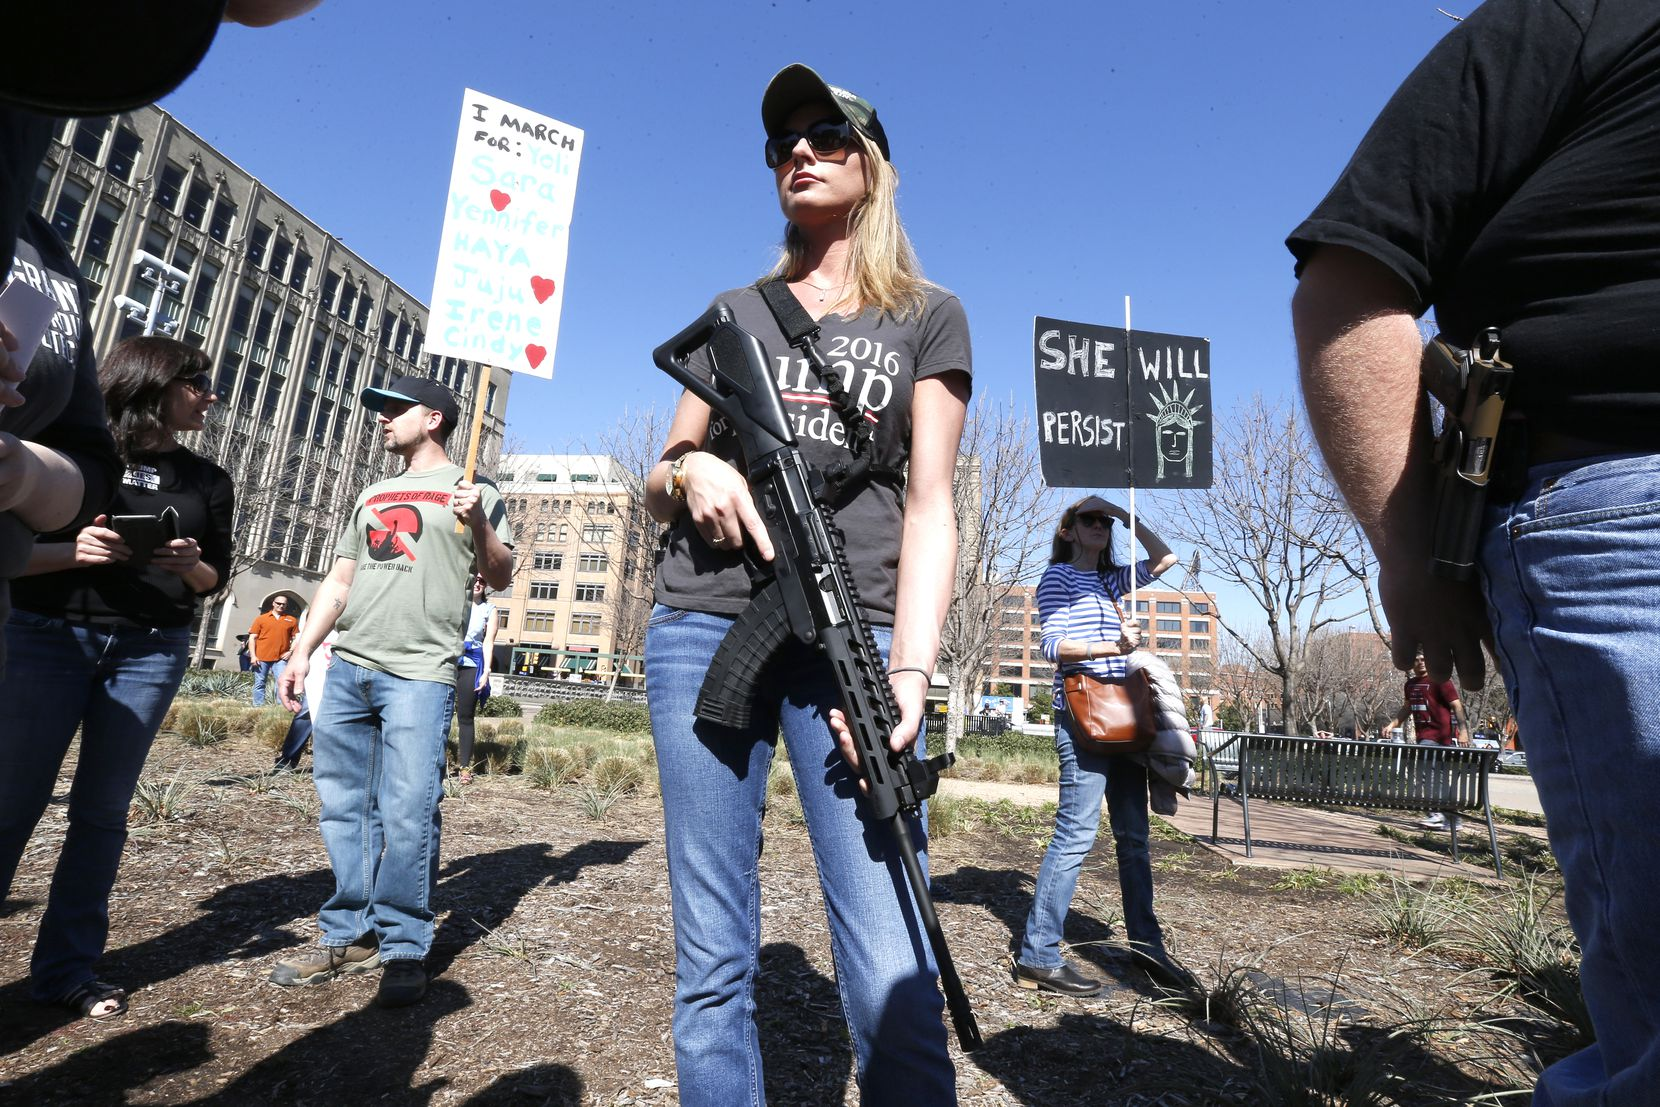 Brooke Wang, of Plano, Texas open carries a rifle while joining a very small group of counterprotesters, as hundreds rallied nearby in support of immigrant and refugee communities in downtown Dallas on February 18, 2017. (Nathan Hunsinger/The Dallas Morning News)